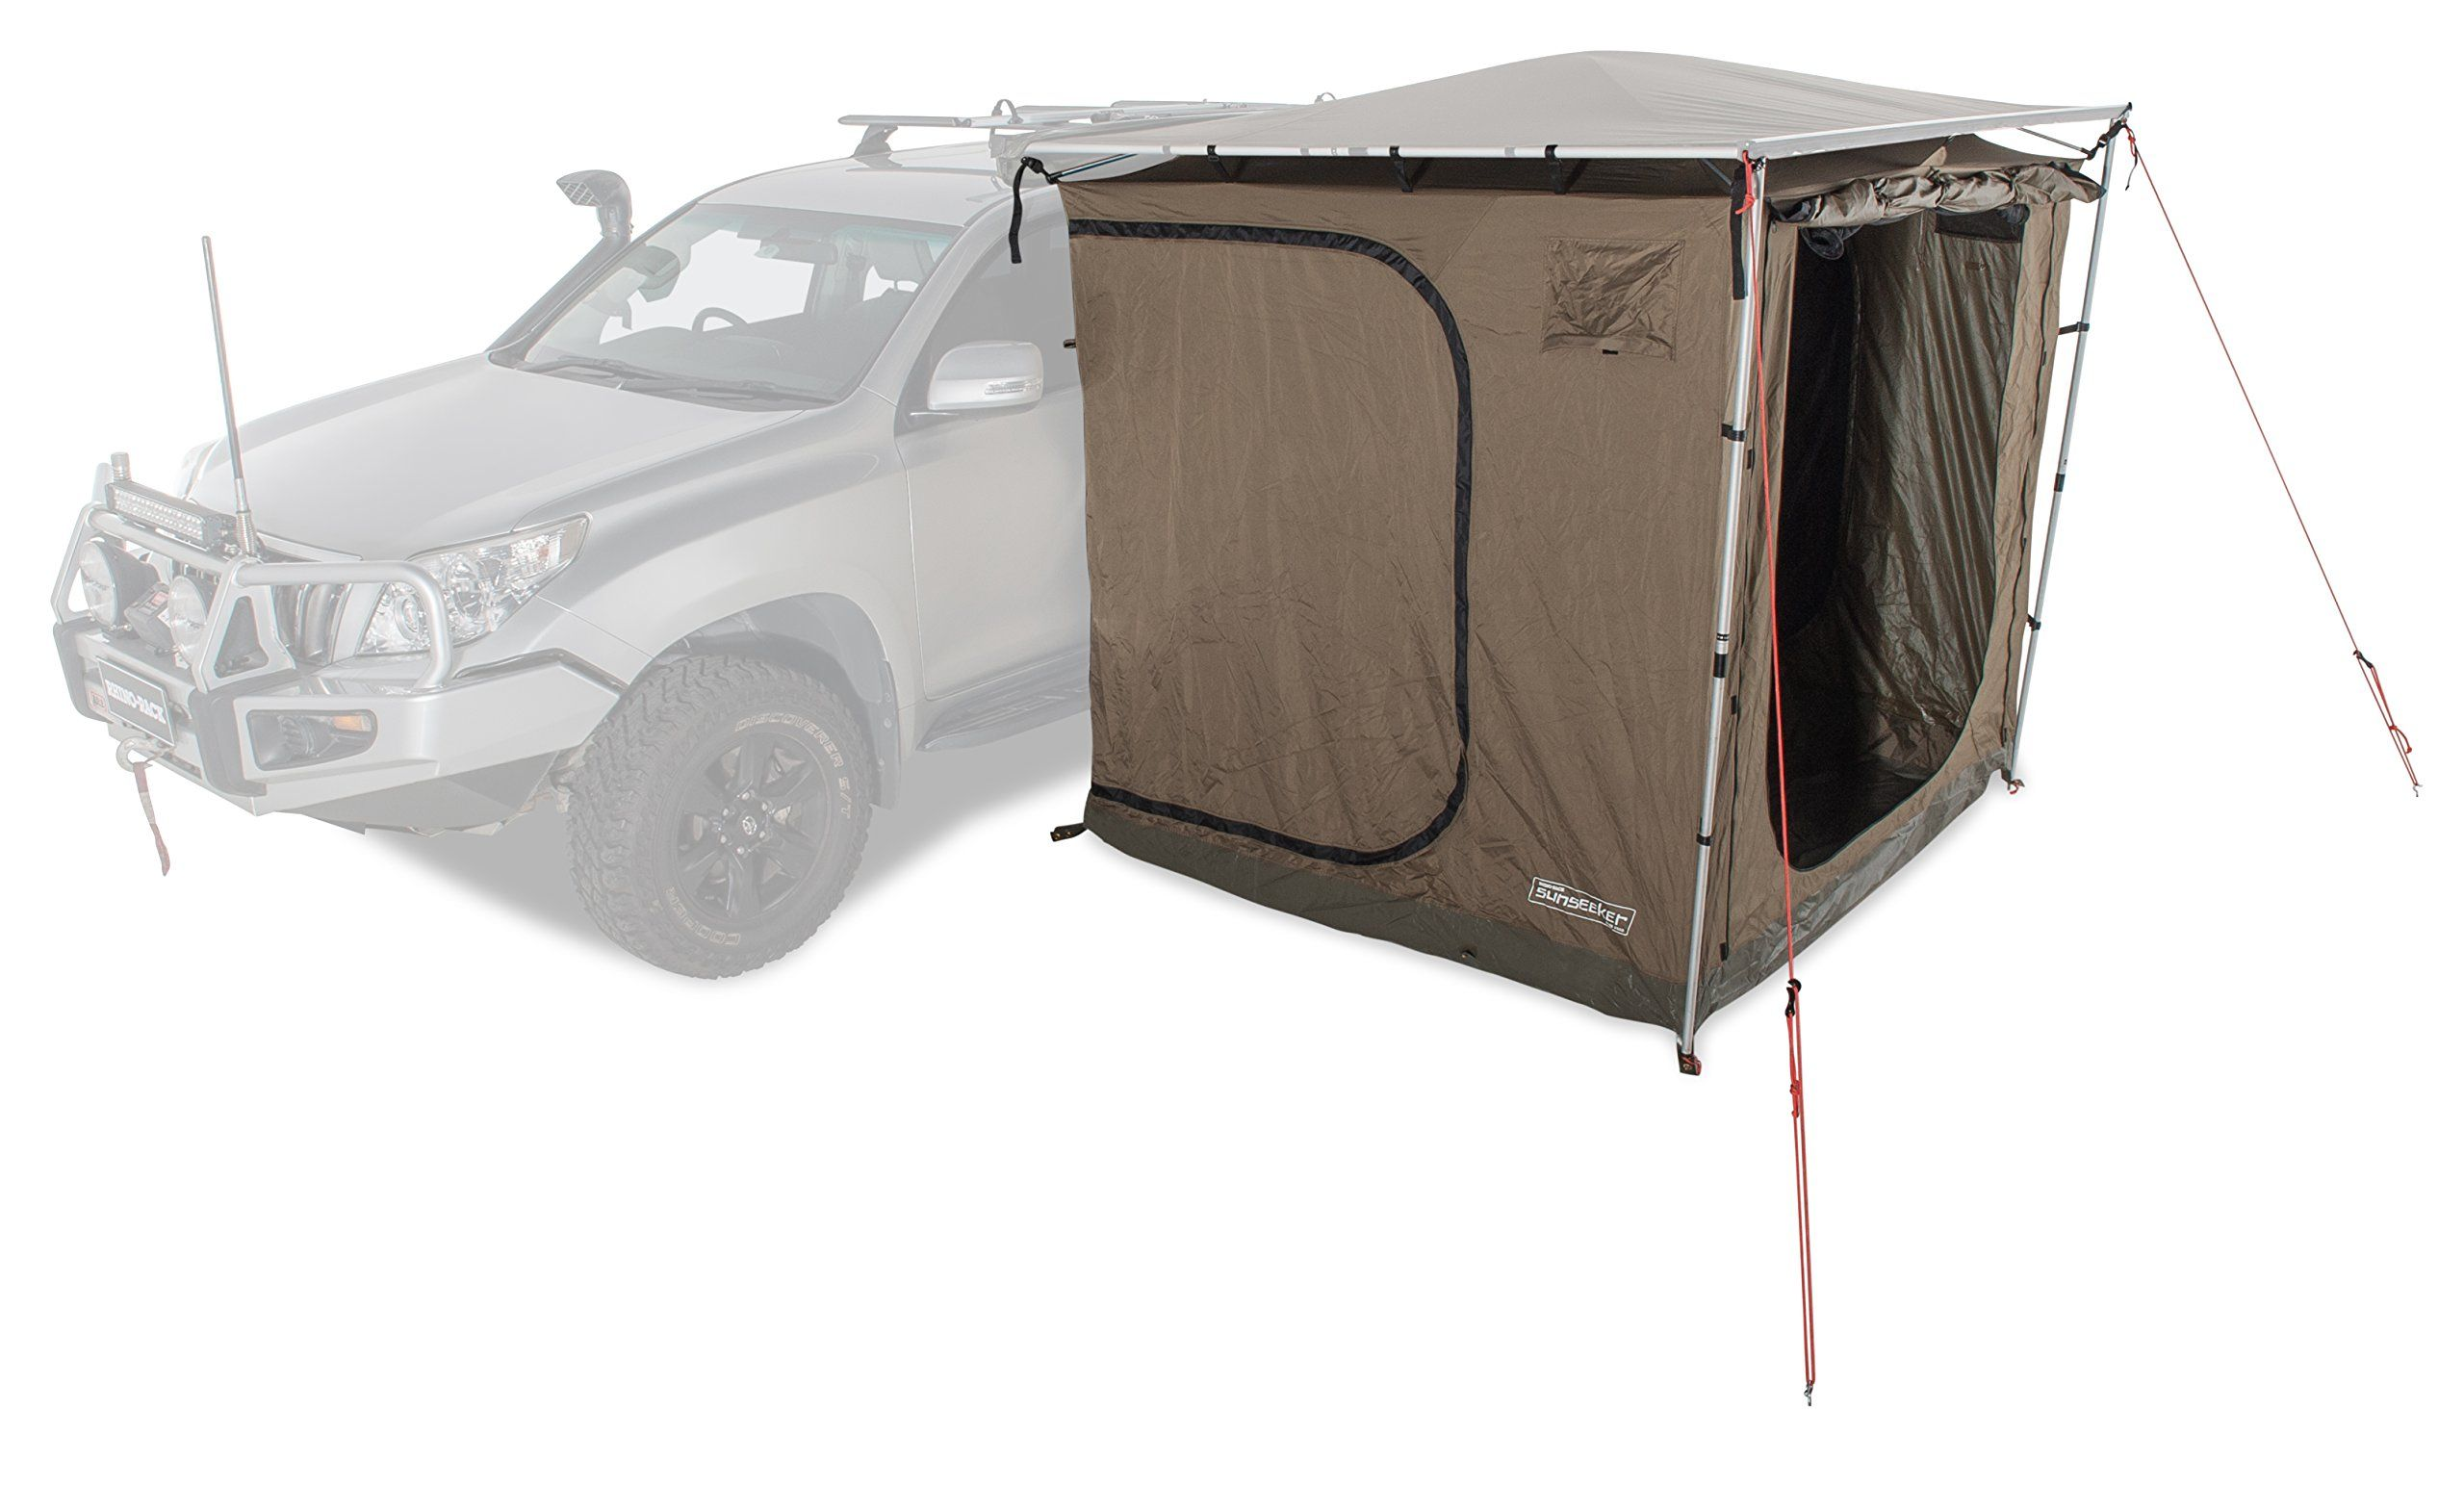 Rhino Rack Sunseeker Base Tent 2 5m Dome Roof For Extra Internal Height And Effective Water Run Off During Showers And Storms Waterproof Flooring Tent Rack